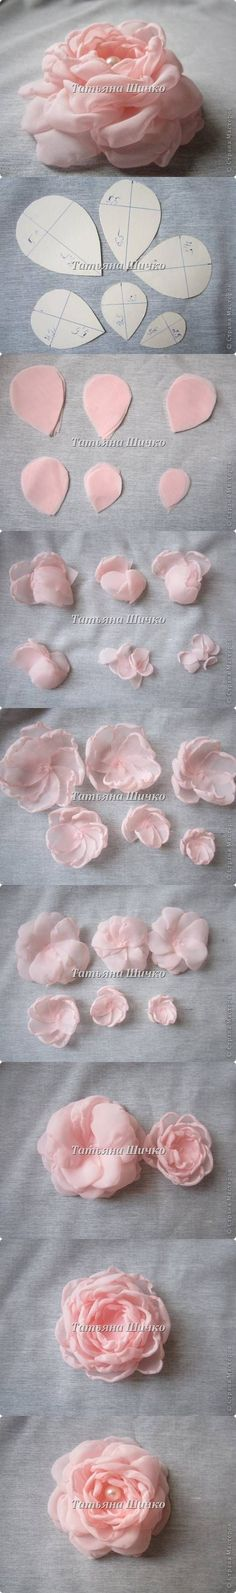 DIY Nylon Flower * Tutoriel *